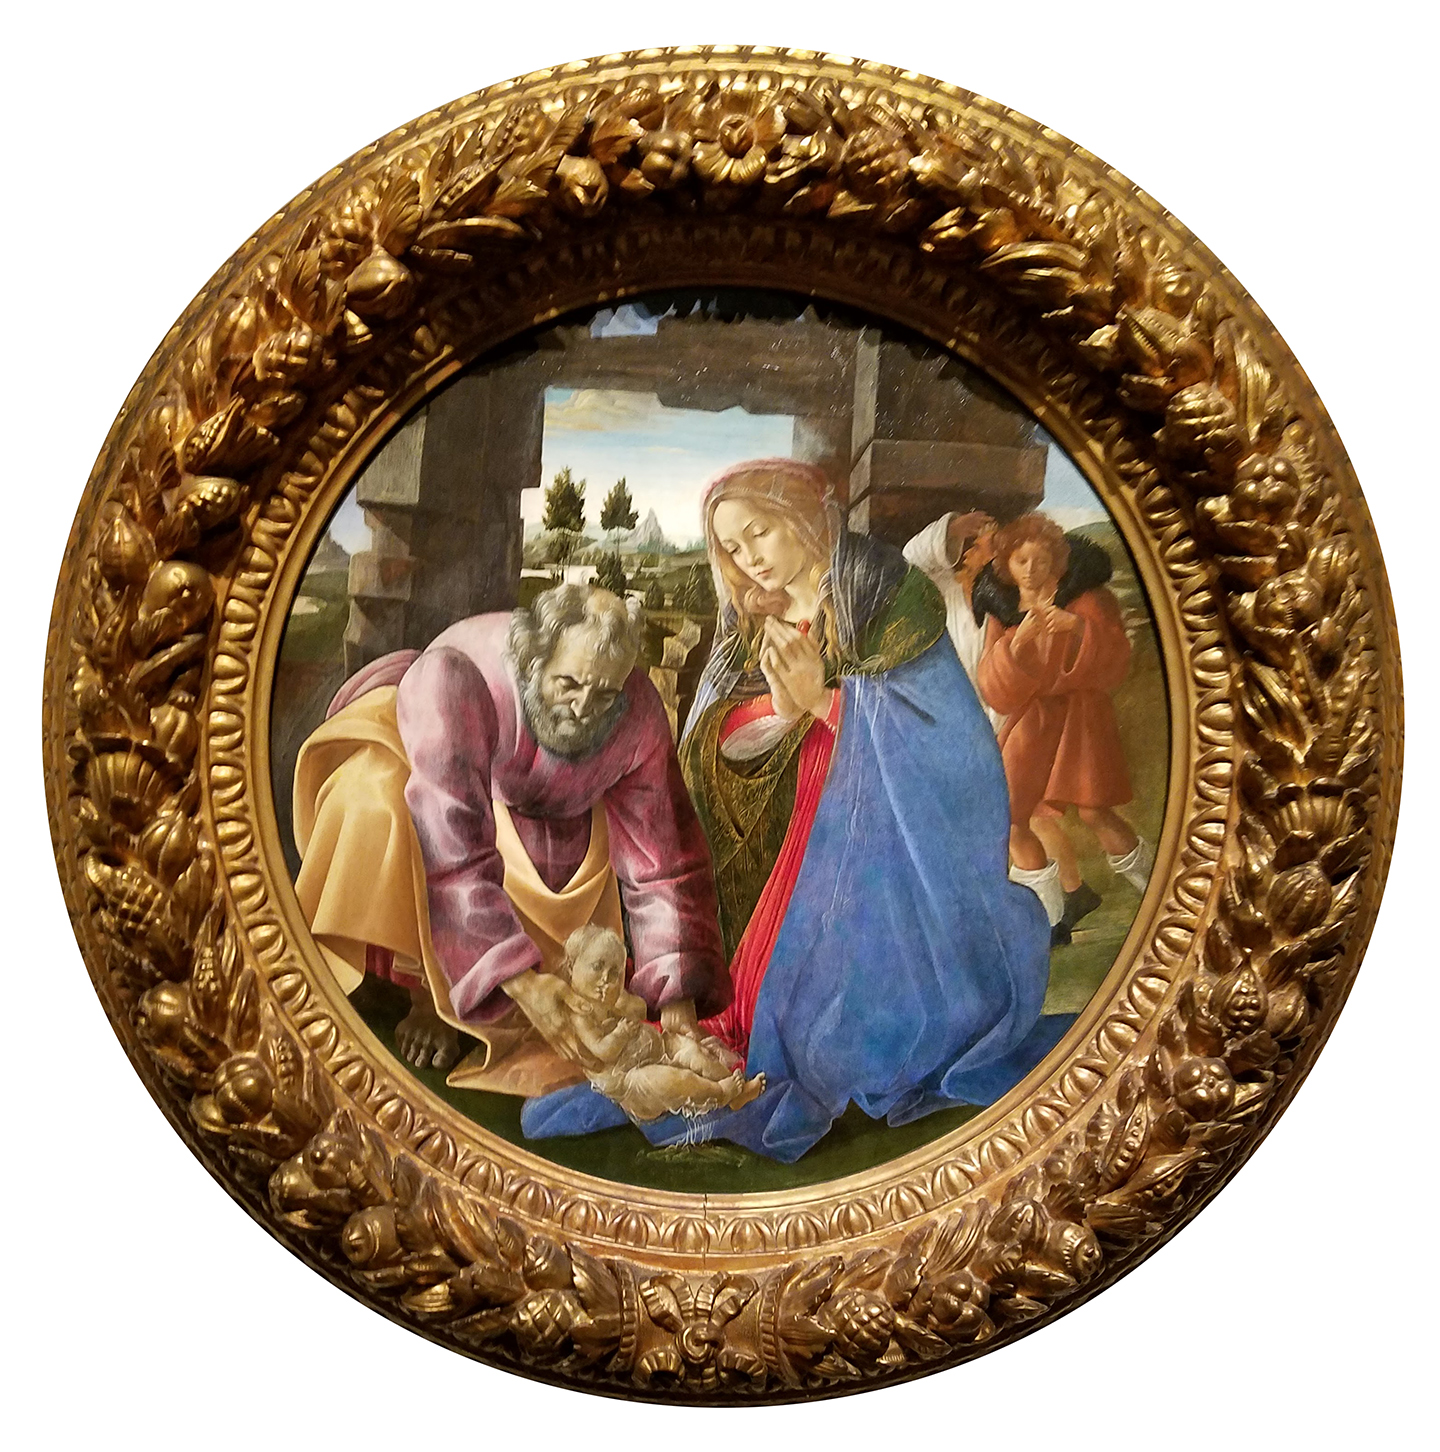 Botticelli - The Nativity, 1482-85